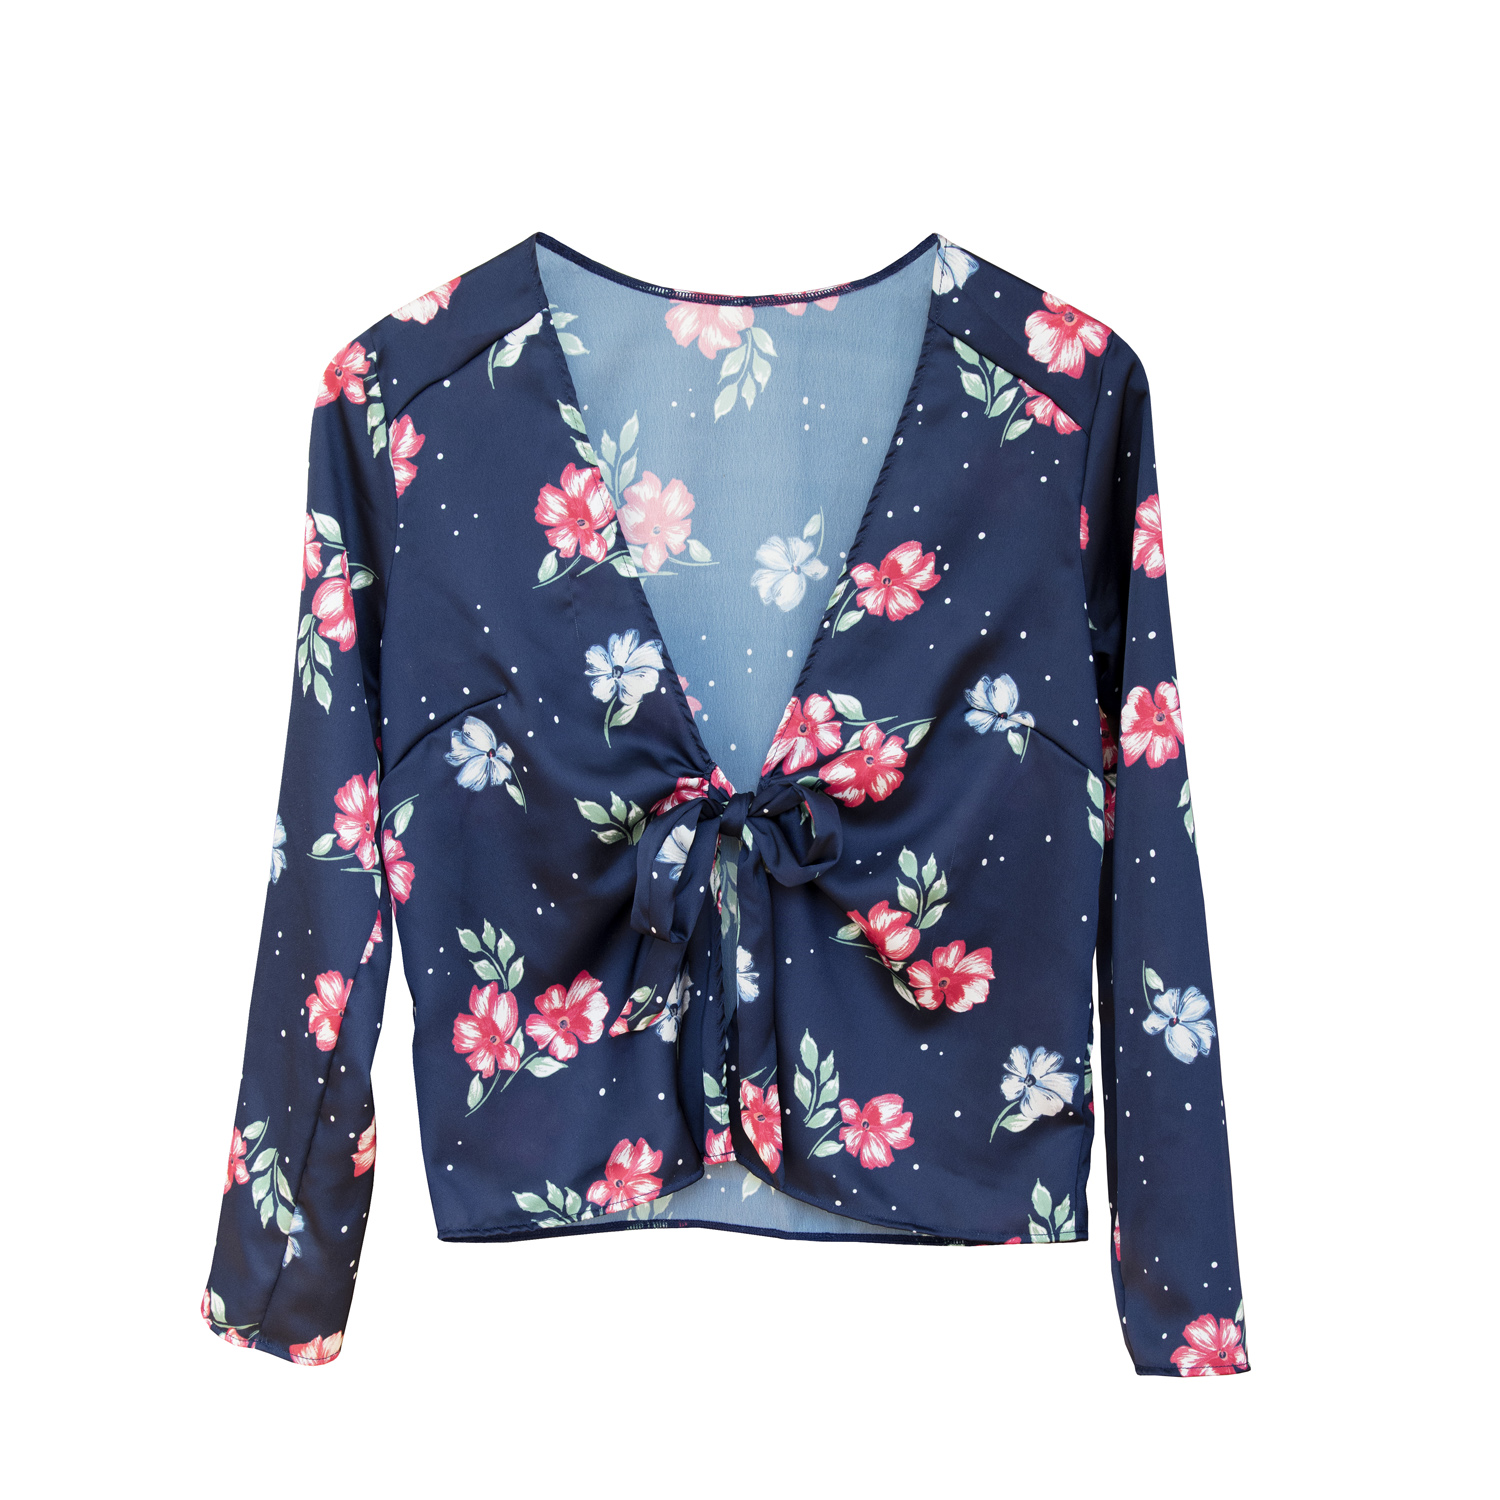 lingerie shirt Marmont Gossip Blue 39 € Girls In Paris photo 6